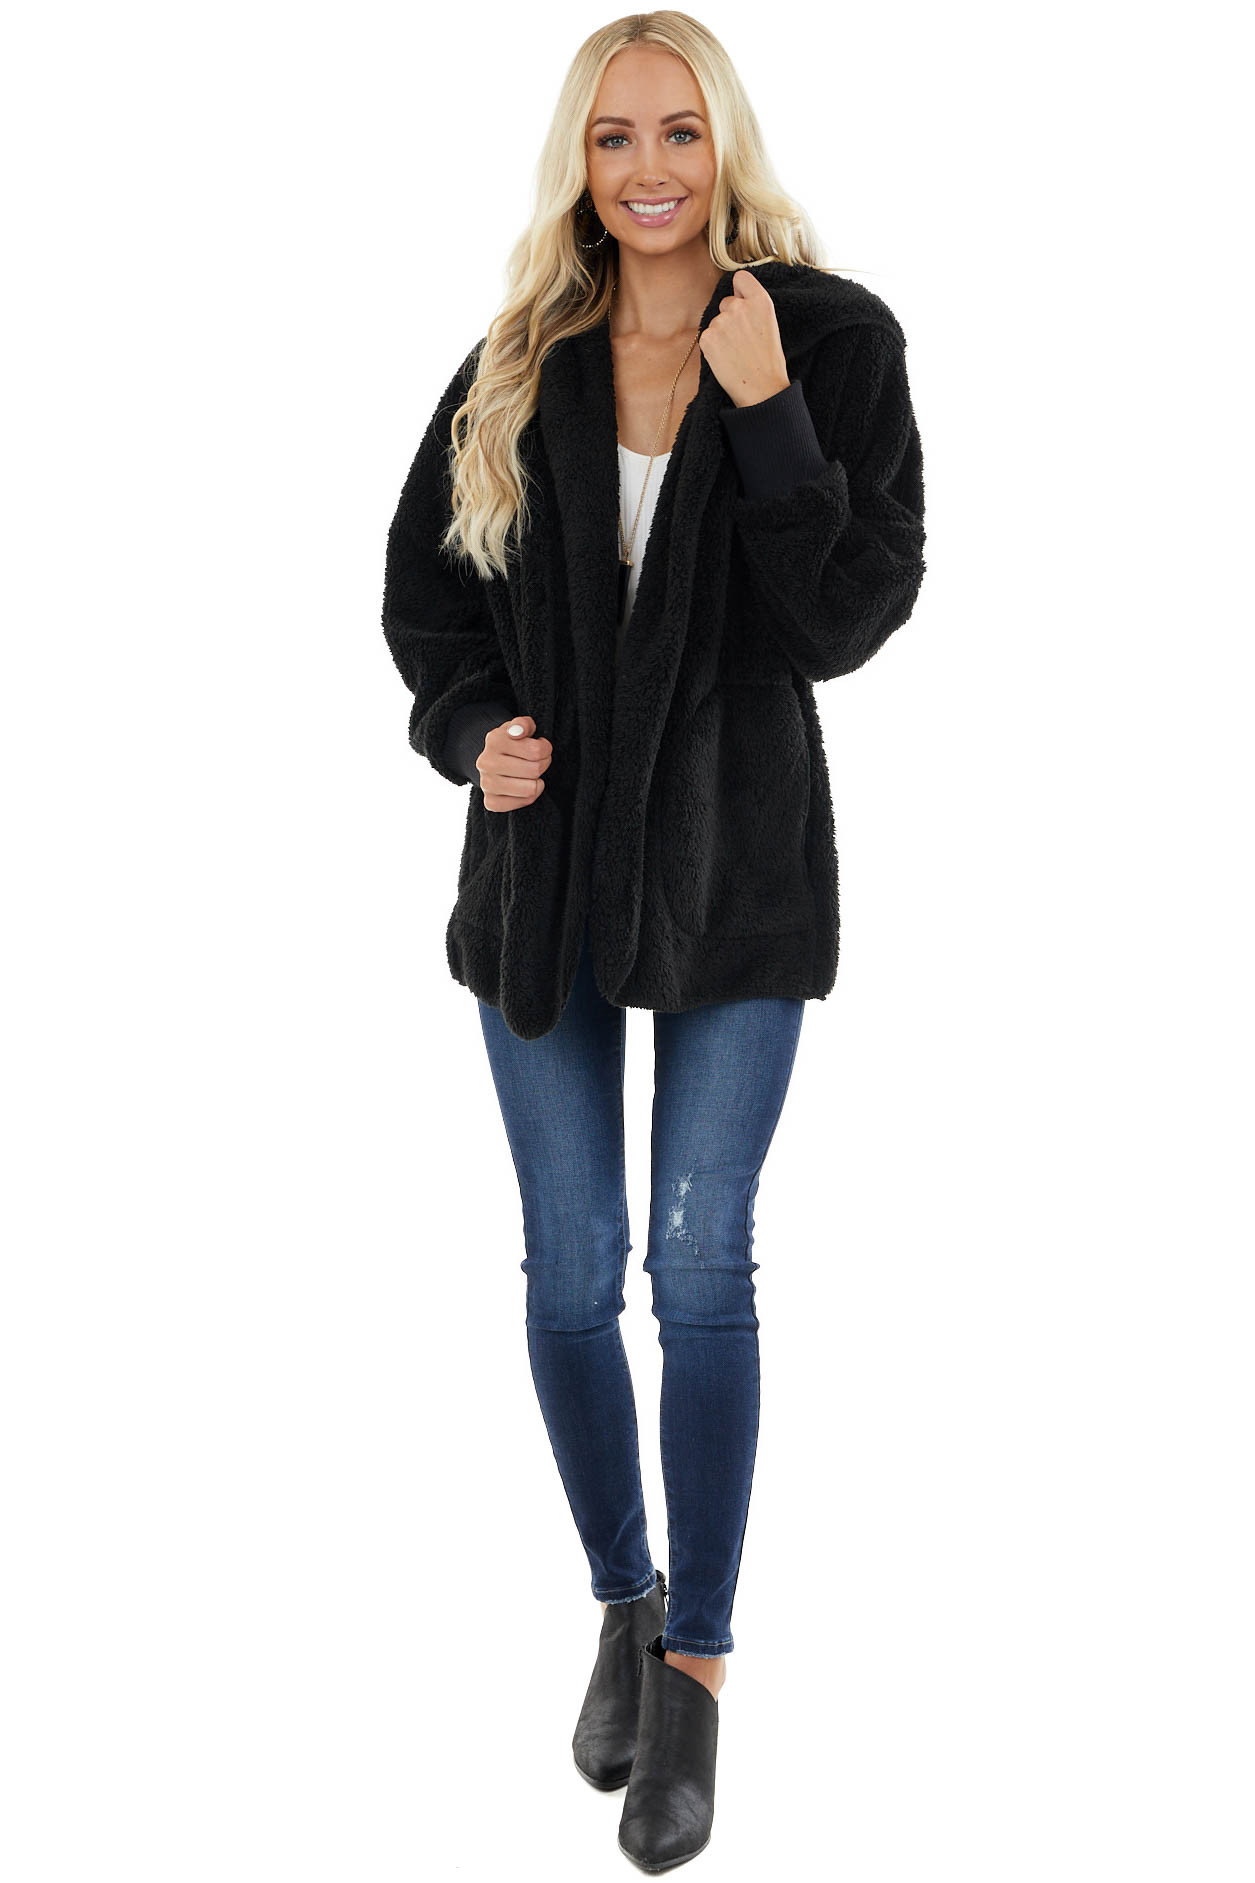 Black Fuzzy Fleece Hooded Cardigan with Front Pockets